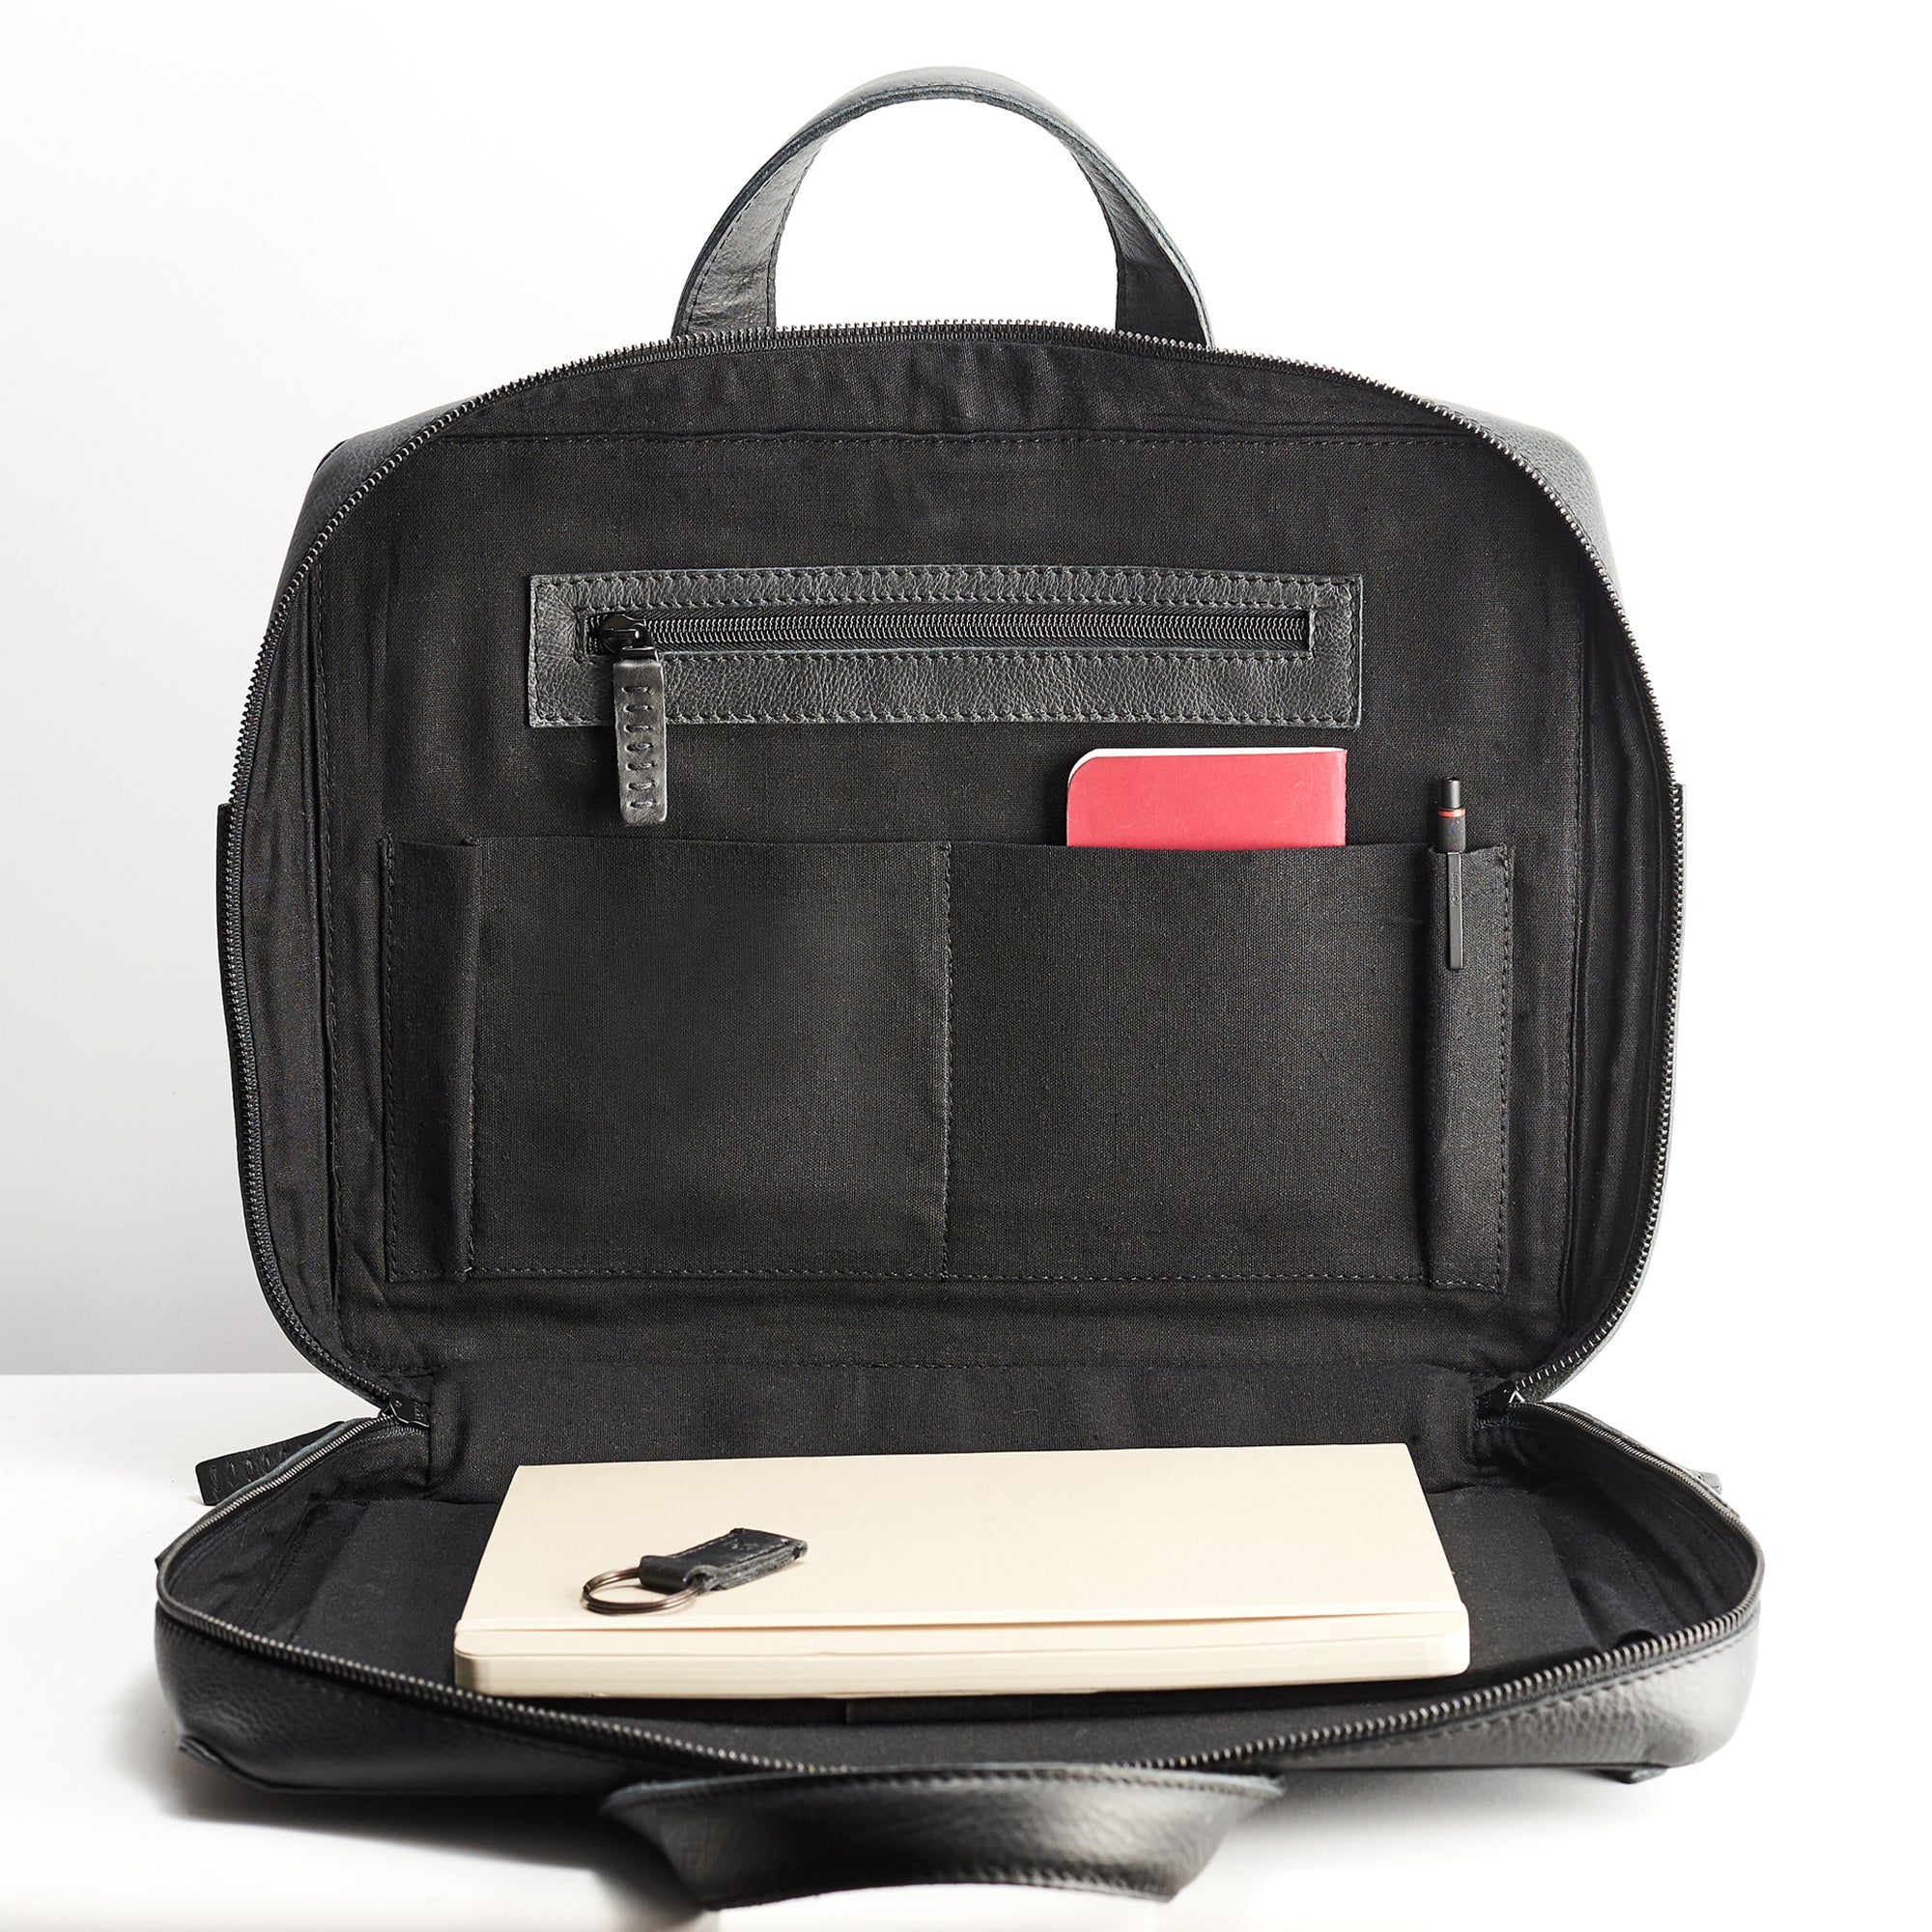 Soft leather men s briefcase. Linen interior. Mens custom leather black  briefcase 927a29d2eec69